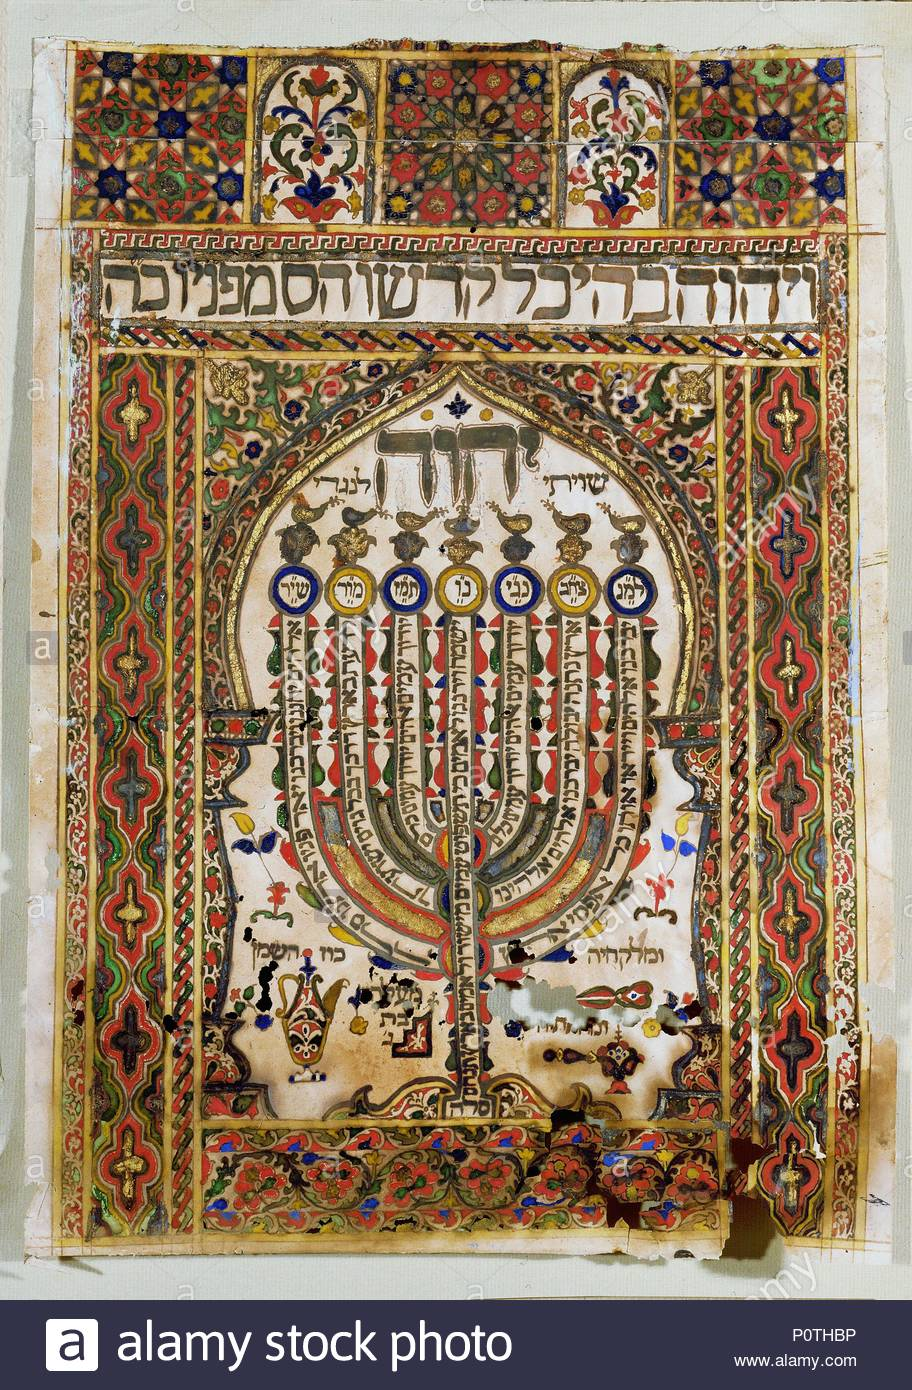 Shiviti, a decorative plaque set on the eastern wall of a synagogue, to indicate the direction of prayer toward Jerusalem. Design and colouring of this shiviti from Morocco is similar to Moslem prayer rugs. Watercolour, gold leaf and gold powder, 41 x 29,3 cm. Location: Israel Museum, Jerusalem, Israel. - Stock Image